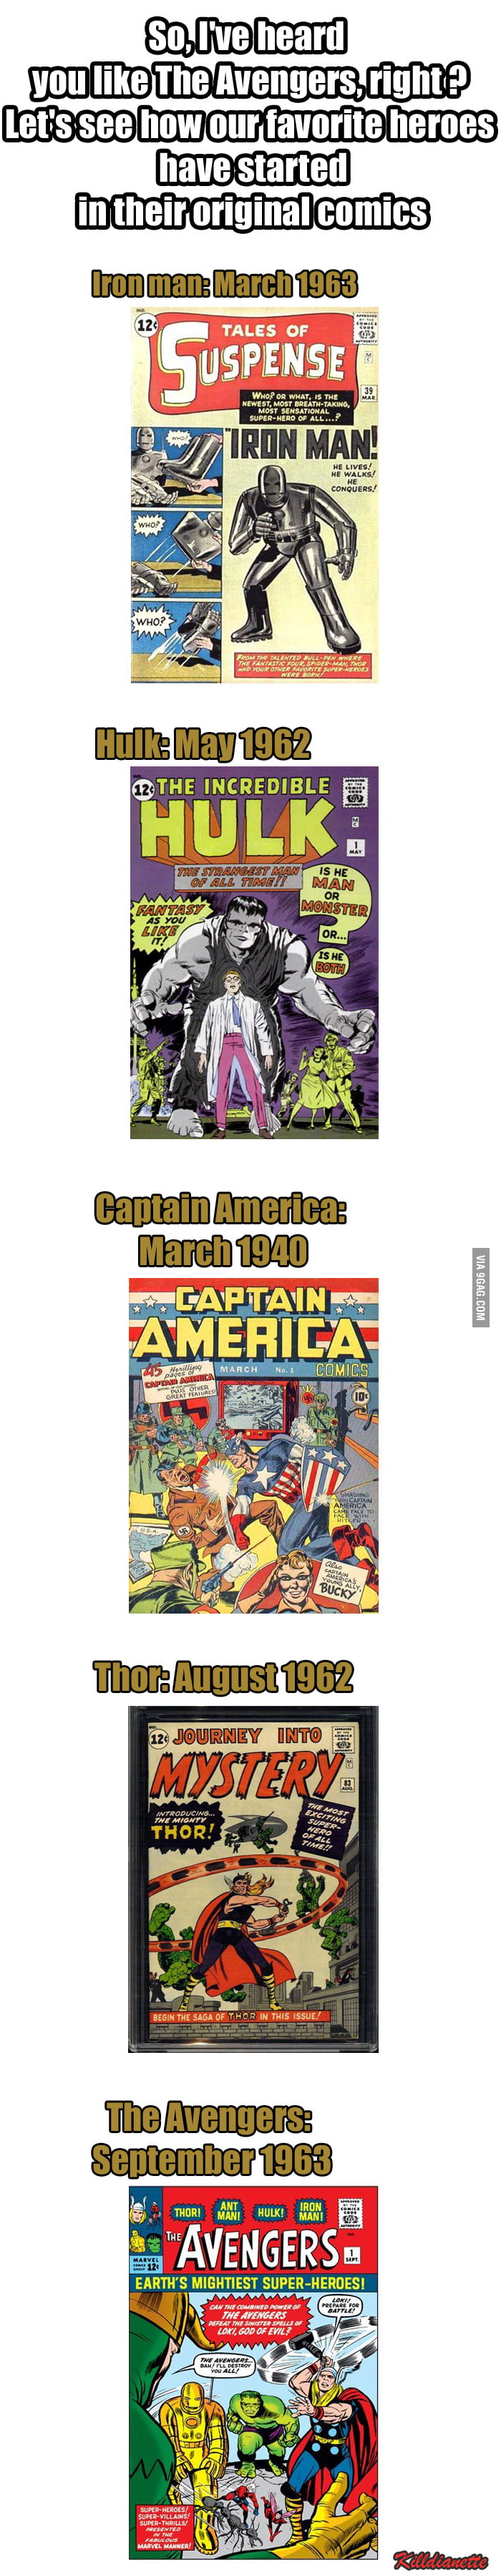 The Avengers for noobs and nostalgics